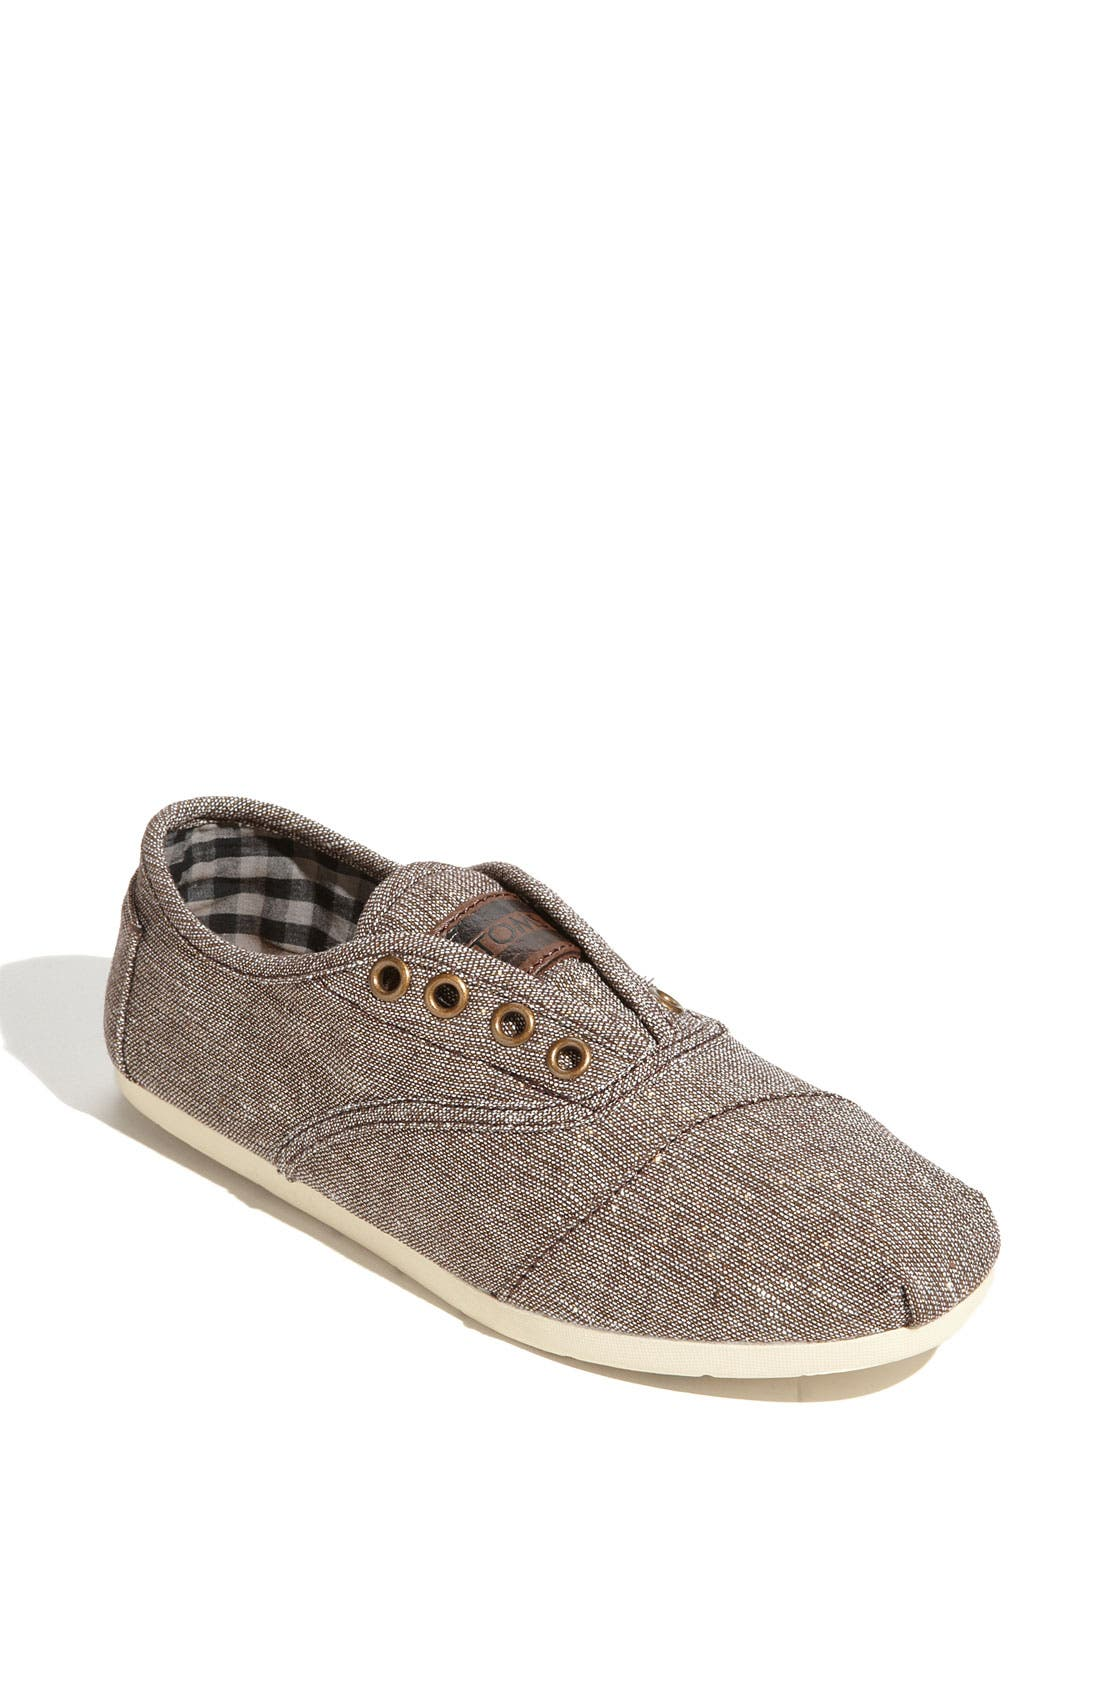 Alternate Image 1 Selected - TOMS 'Cordones' Metallic Slip-On (Women)